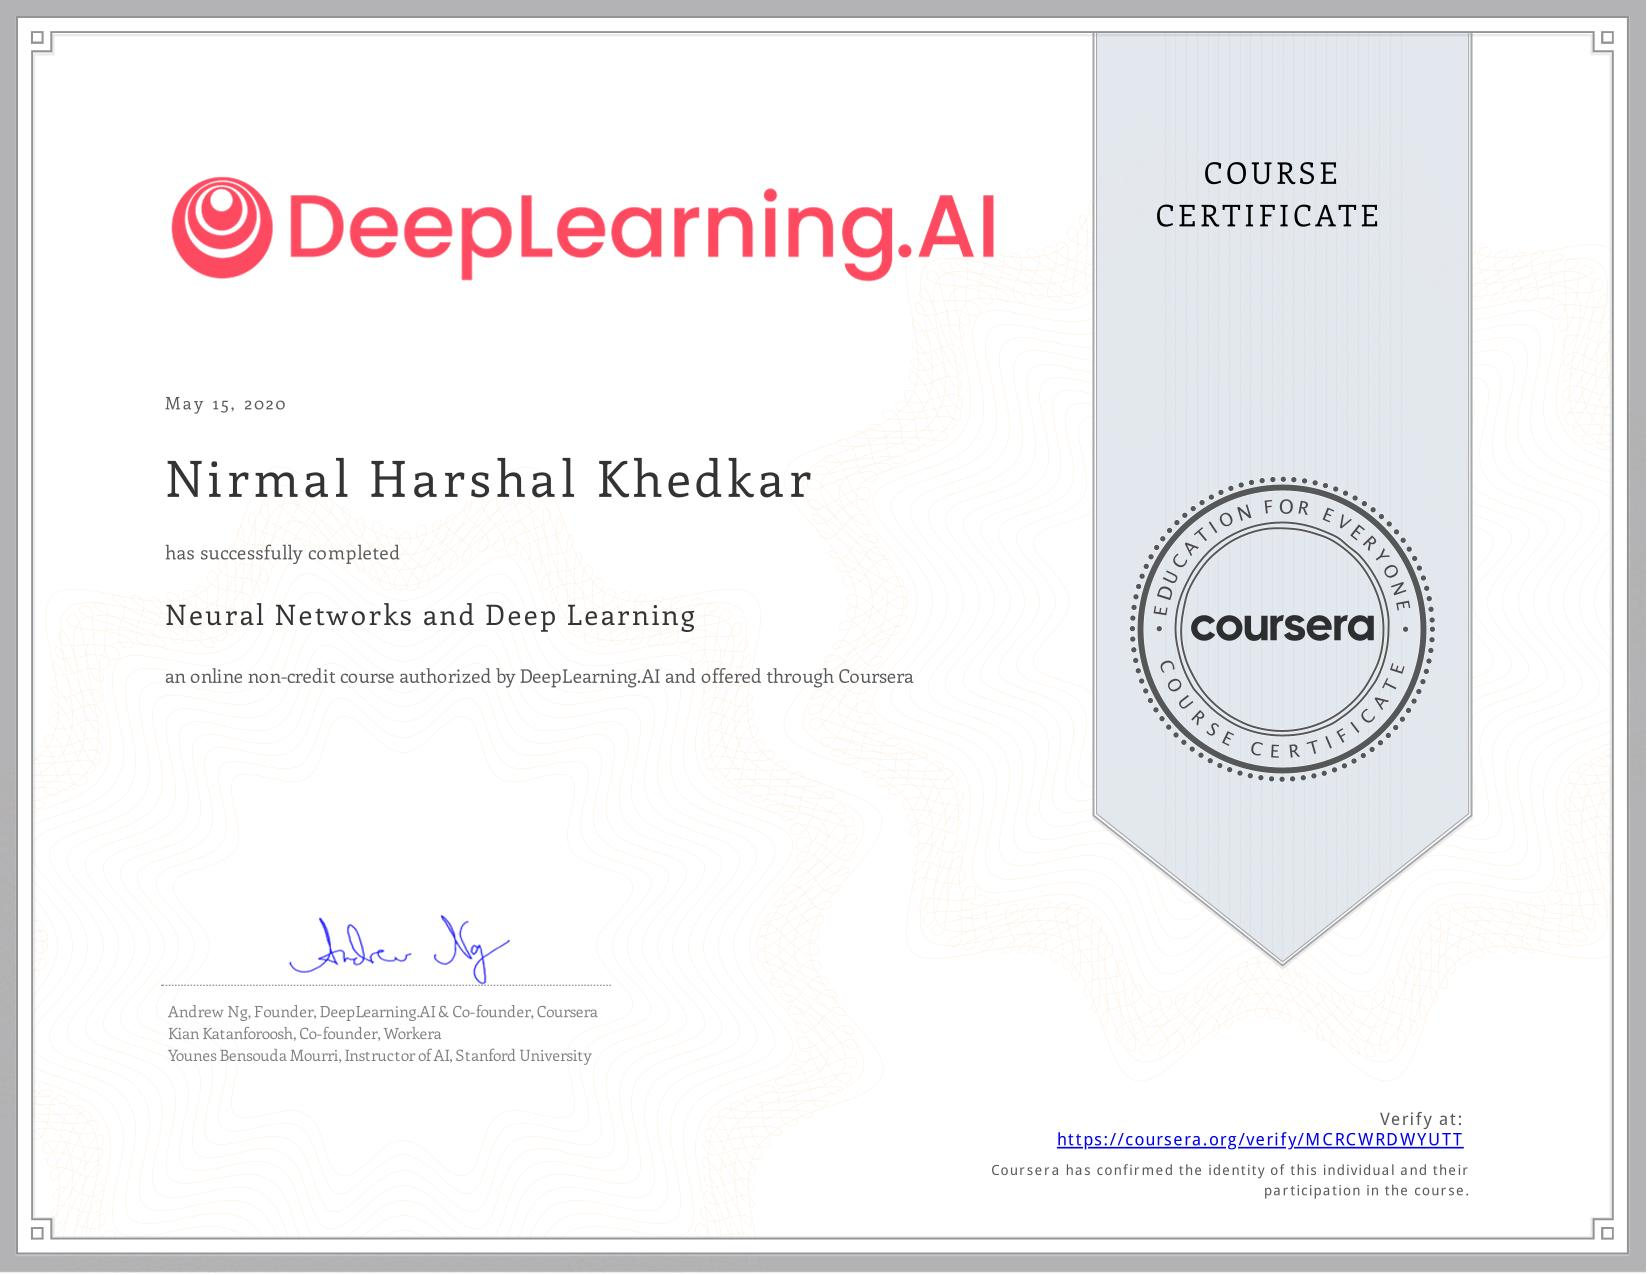 View certificate for Nirmal Harshal Khedkar, Neural Networks and Deep Learning, an online non-credit course authorized by deeplearning.ai and offered through Coursera